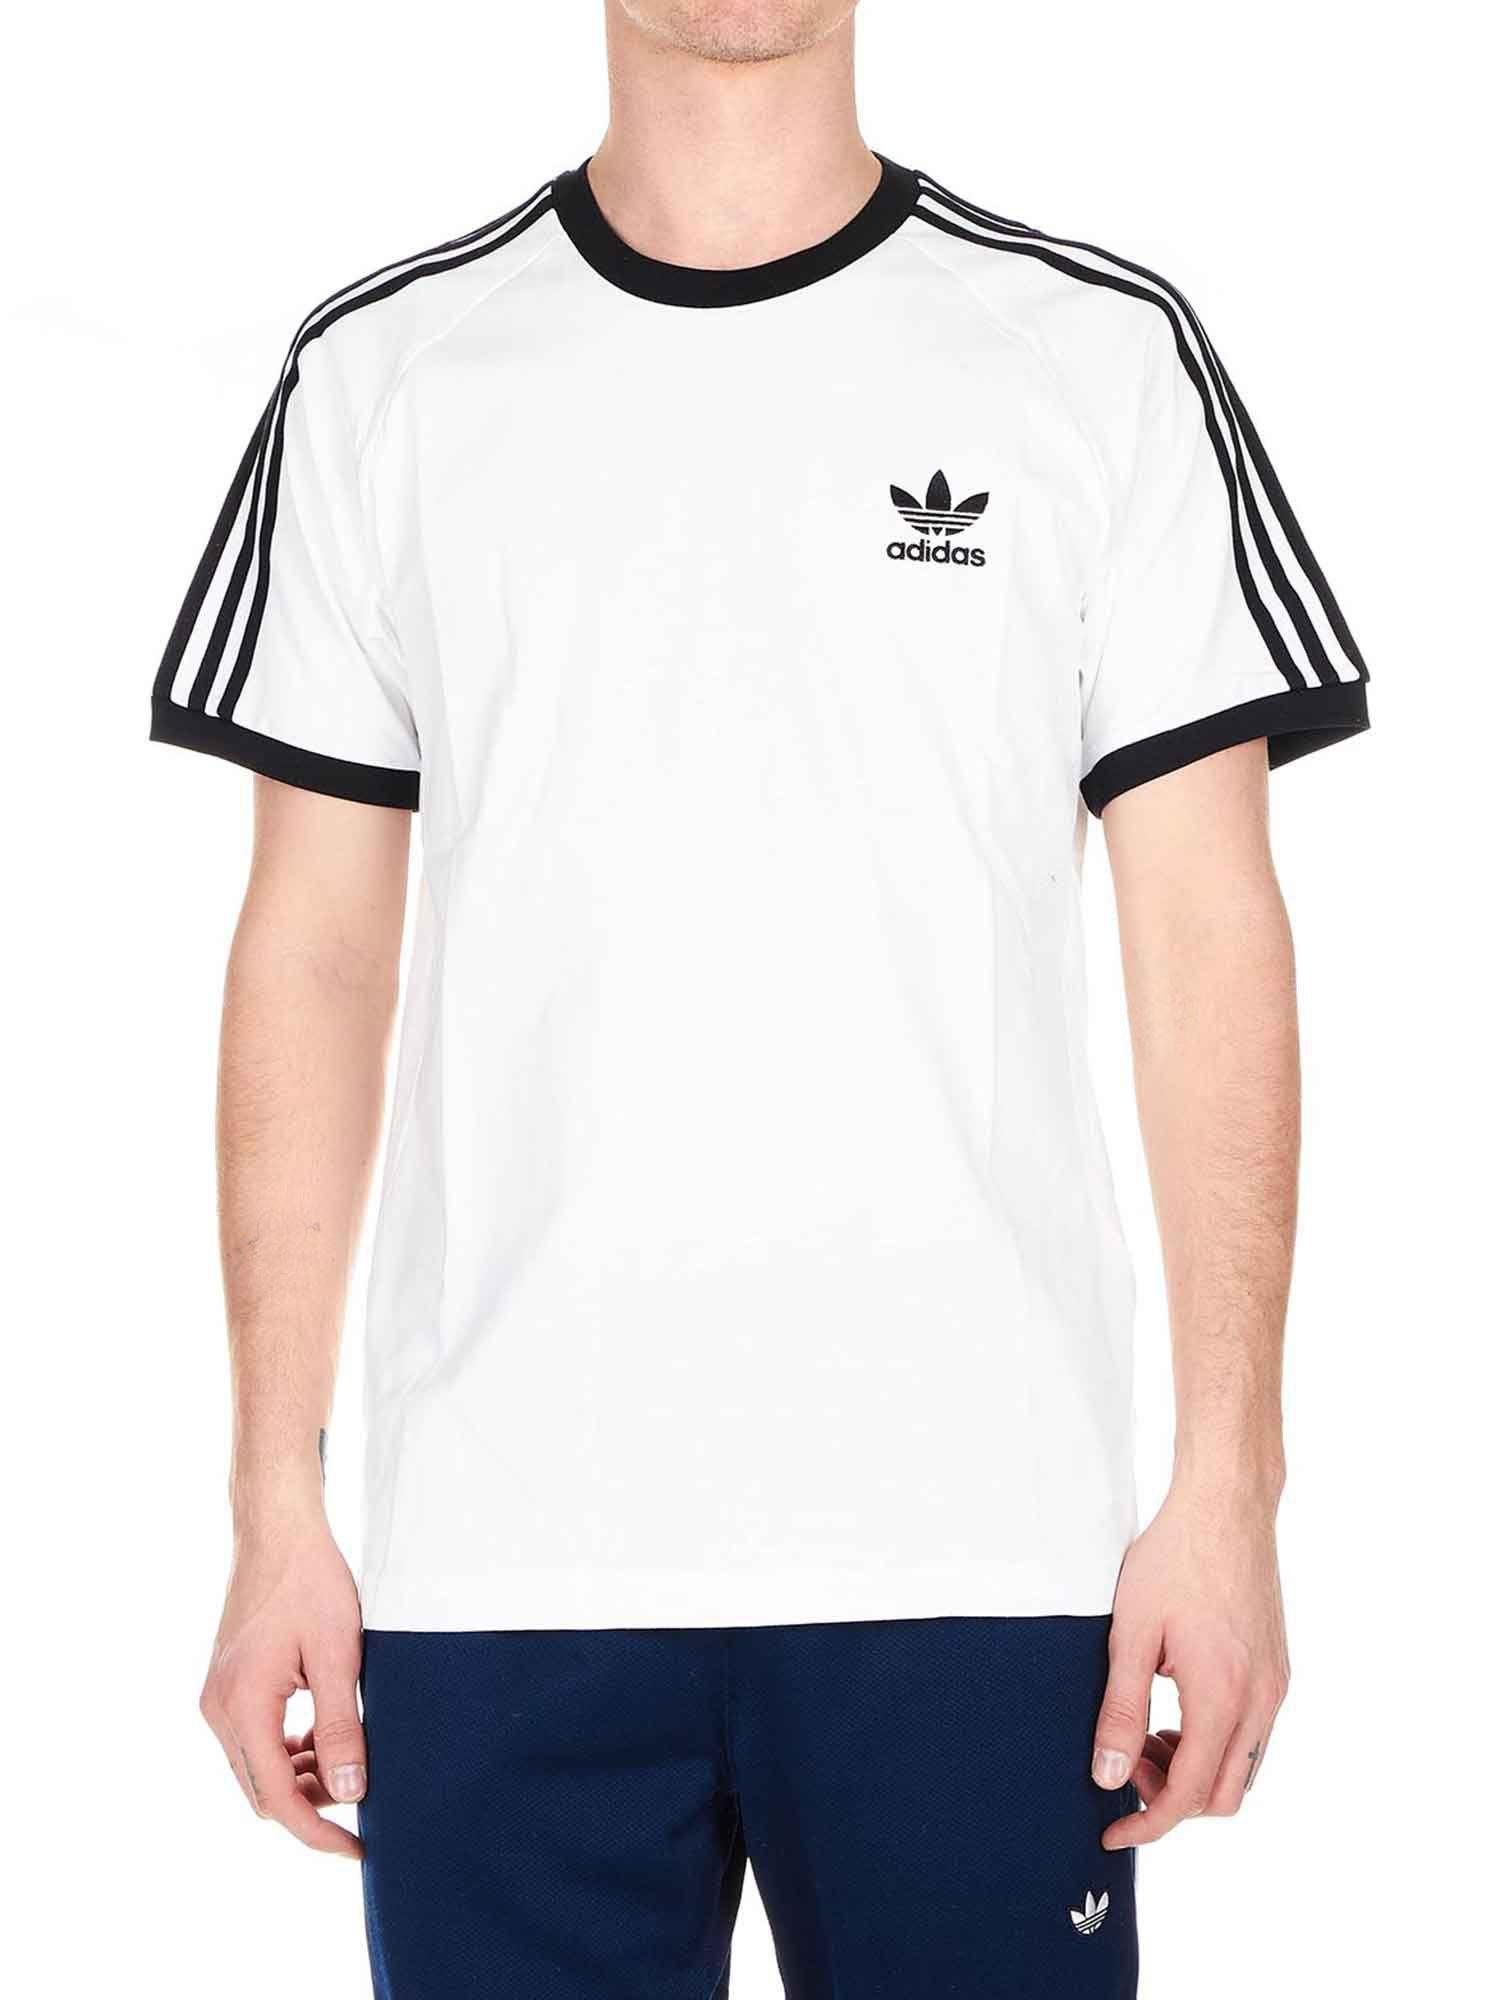 204ca26a adidas Originals 3 Stripes T-shirt In White in White for Men - Lyst